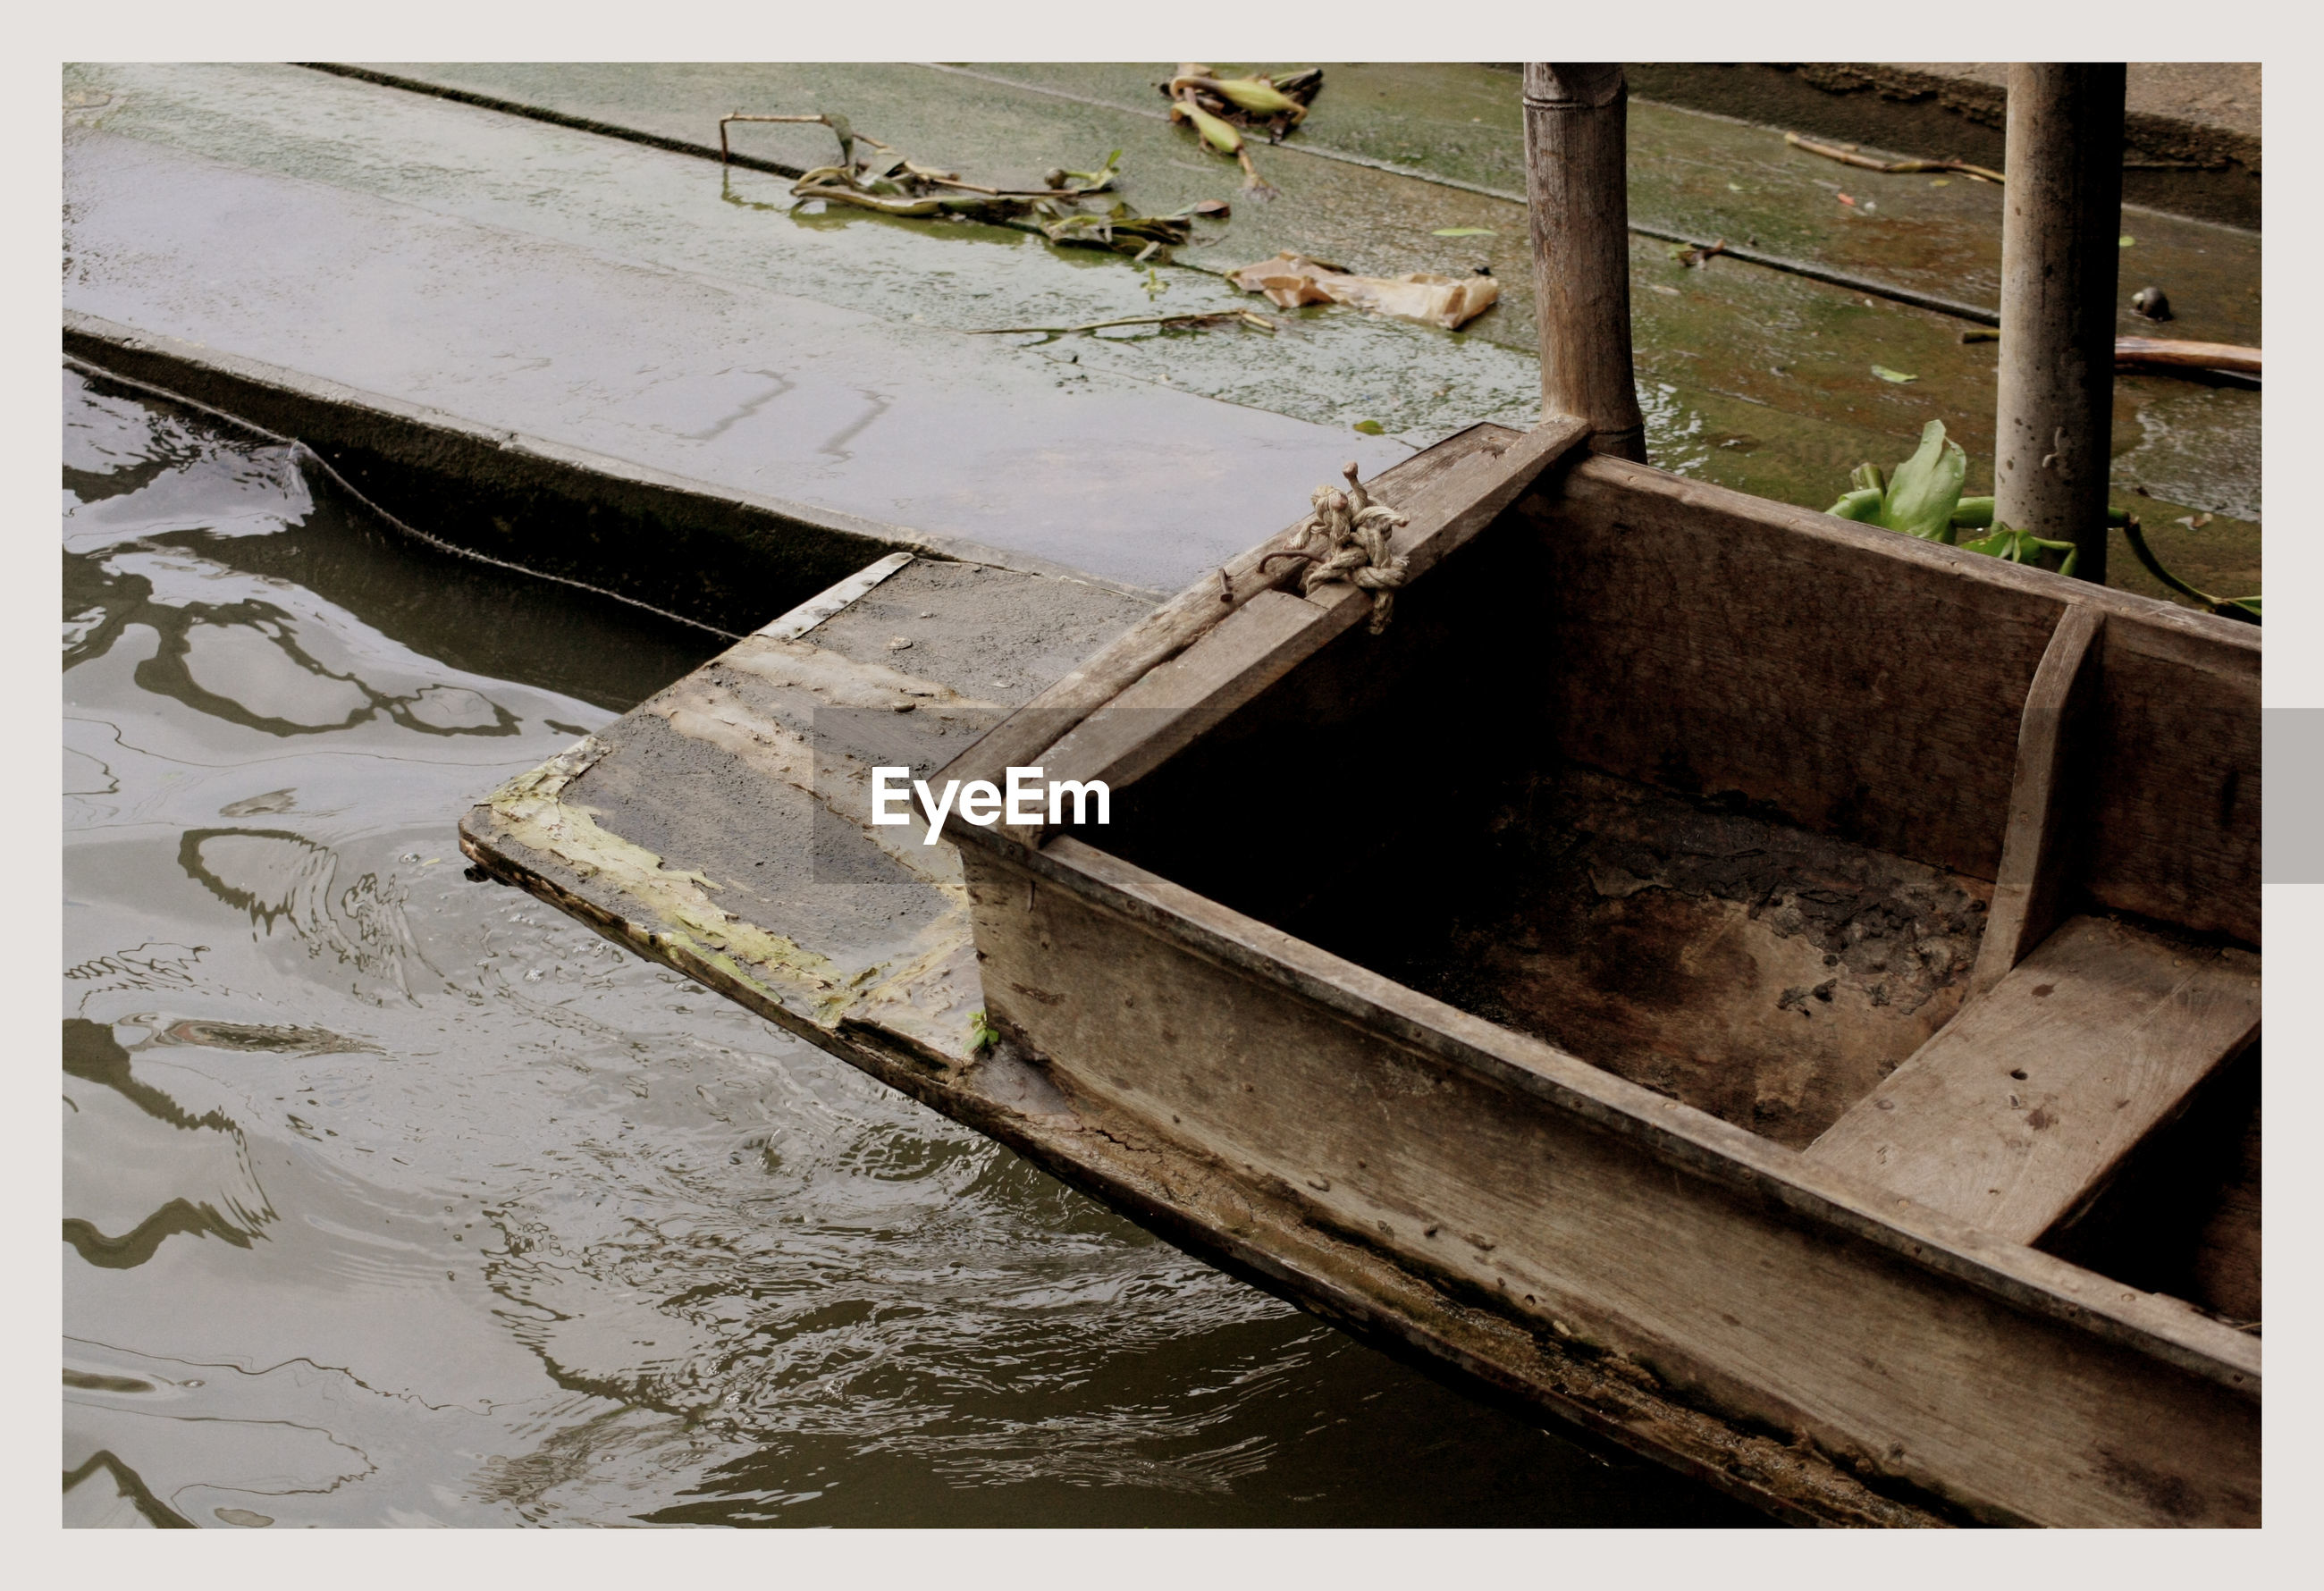 High angle view of wooden boat in river